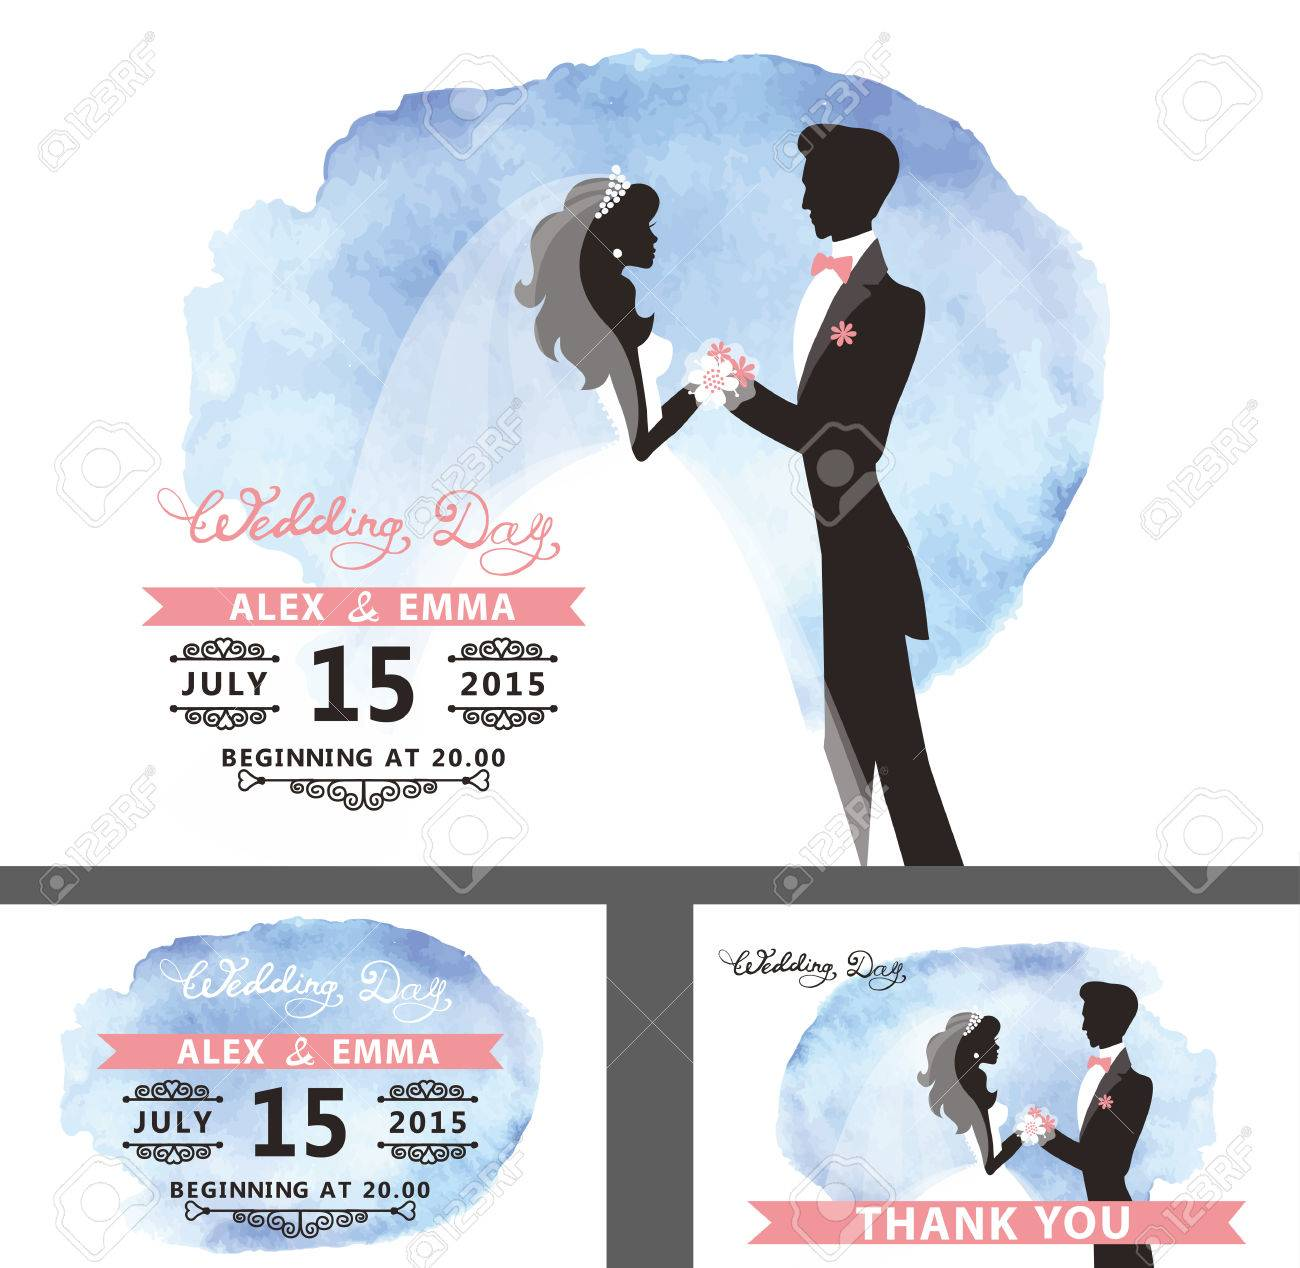 vector wedding bridal shower invitation template set with watercolor cyan stainflat bride and groom portrait silhouettes with hand writing textswirling